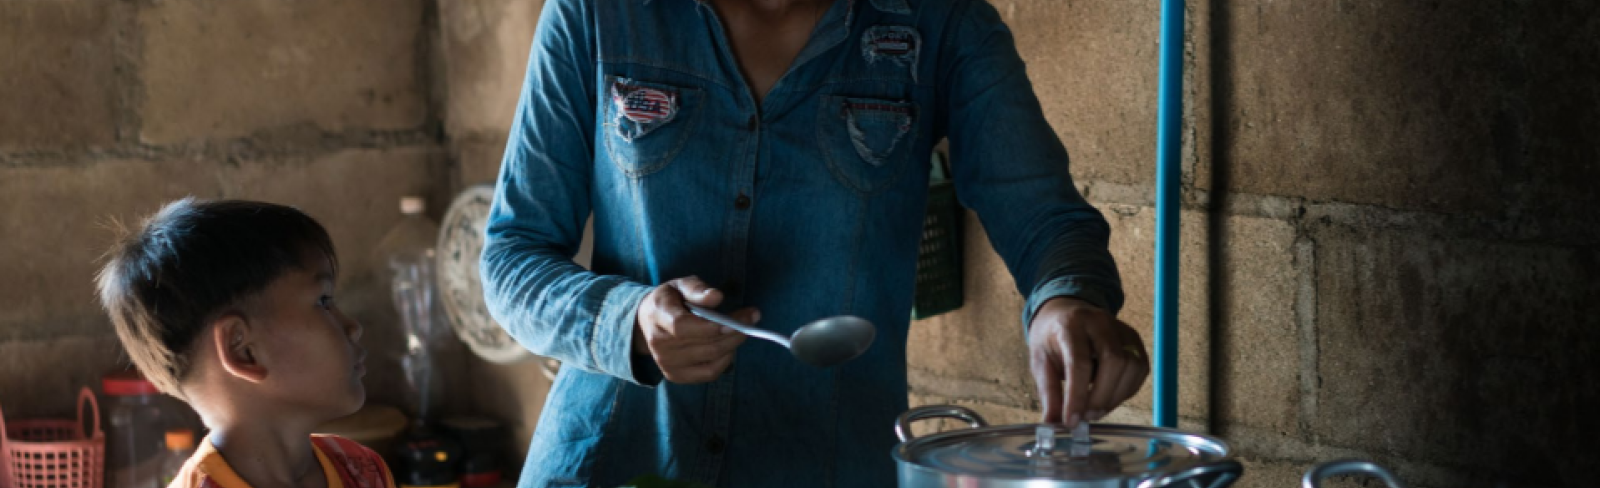 PAST EVENT | JOINT ESMAP & Ci-Dev | Quantifying and Measuring Climate, Health and Gender Co-Benefits from Clean Cooking Interventions:  Methodologies Review | August 6, 2020